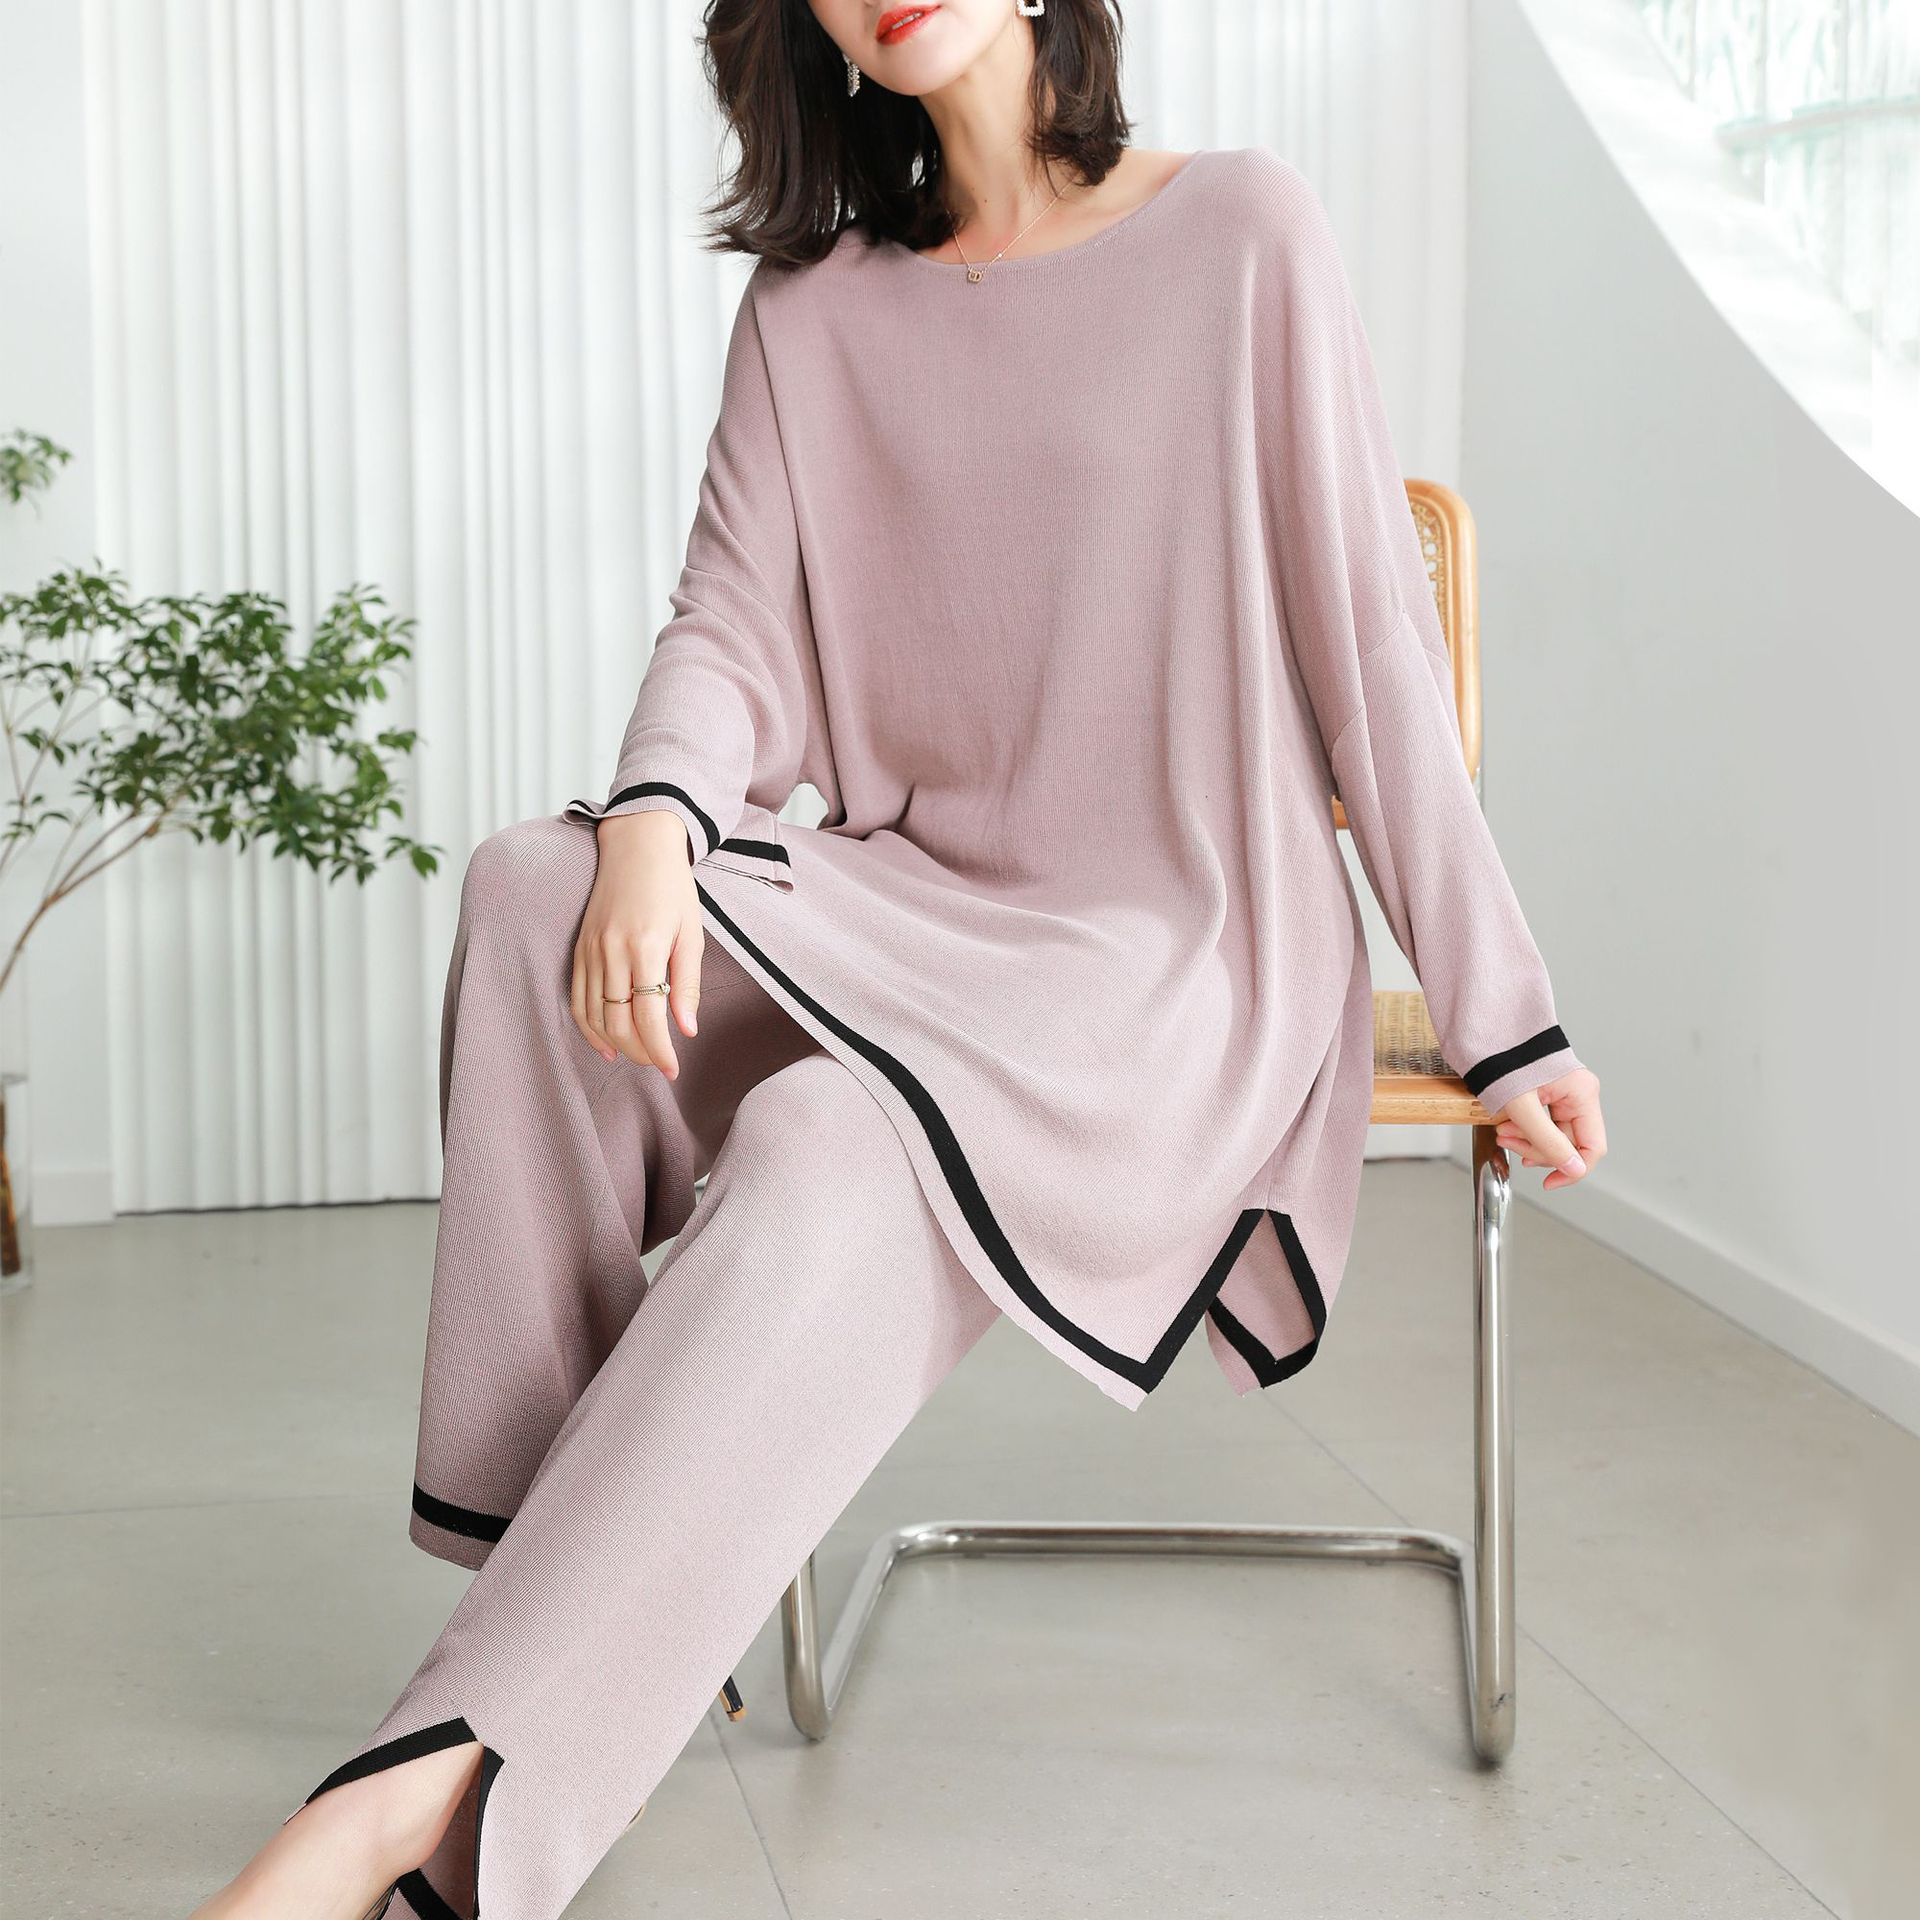 2021 Spring New Fashion Large Size Women's Suit Casual Loose Knitted Batmobile Shirt Wide Leg Pants Two-piece Women